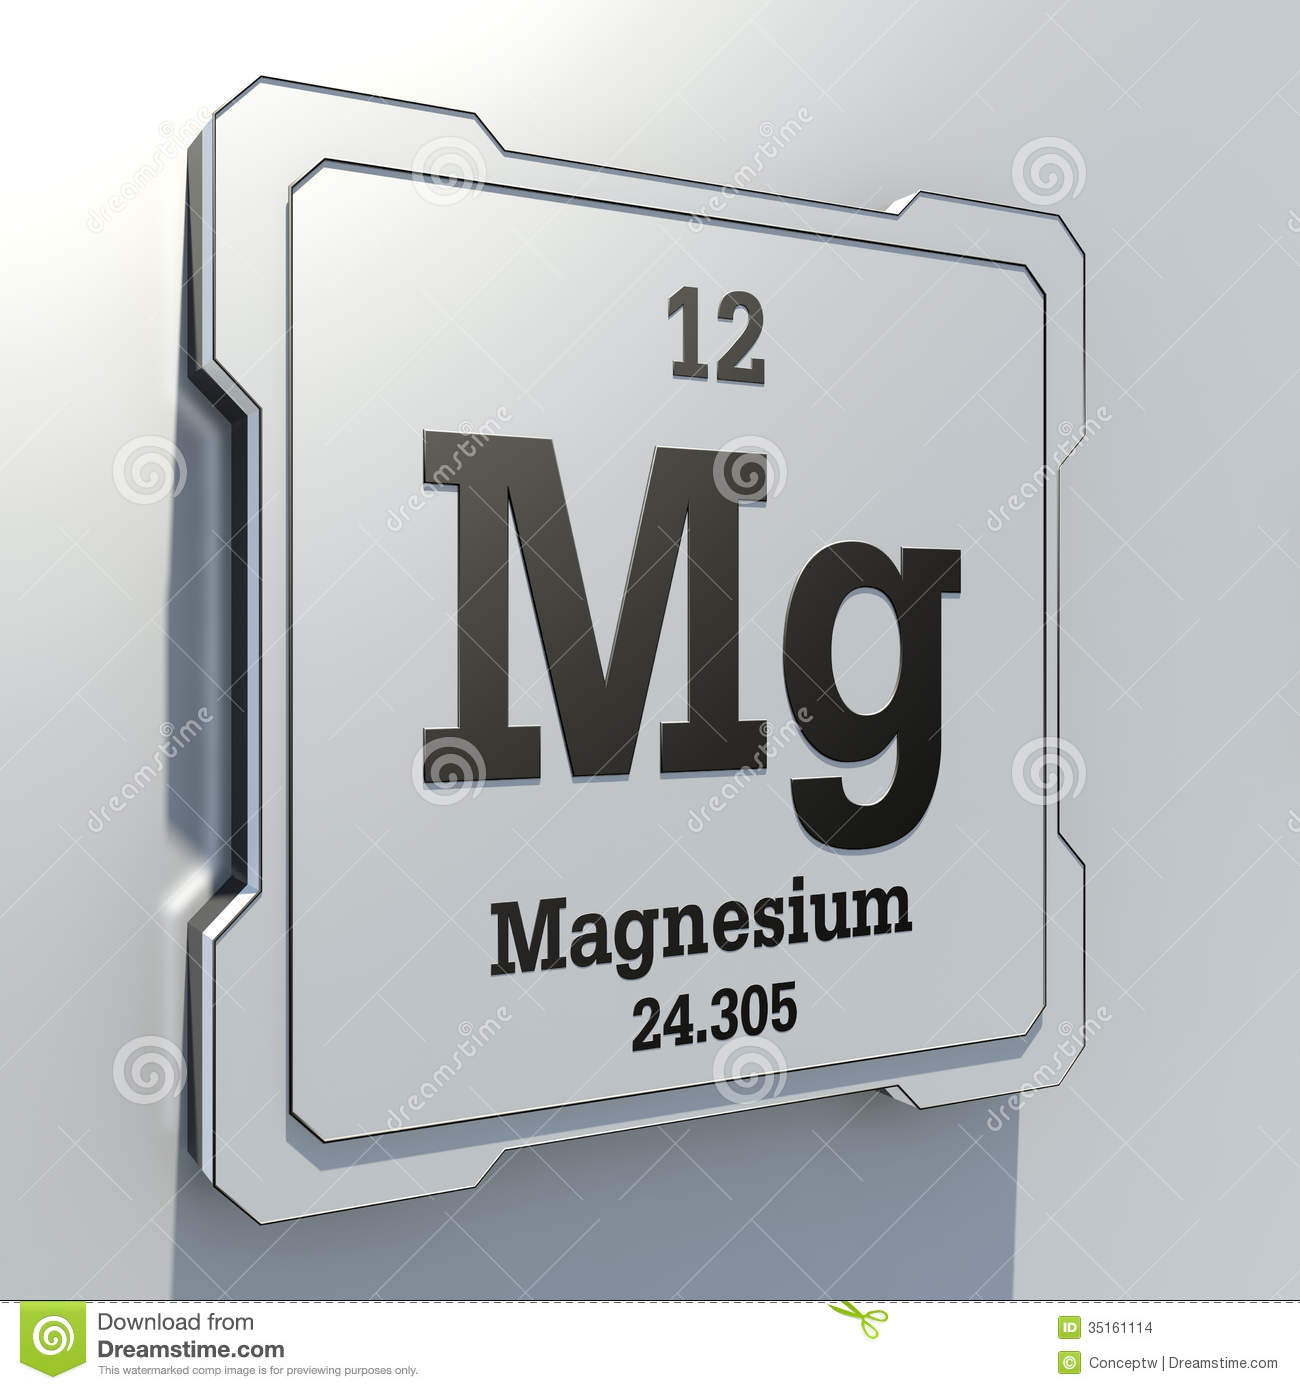 Magnesium element stock illustration image of laboratory 35161114 royalty free stock photo gamestrikefo Gallery